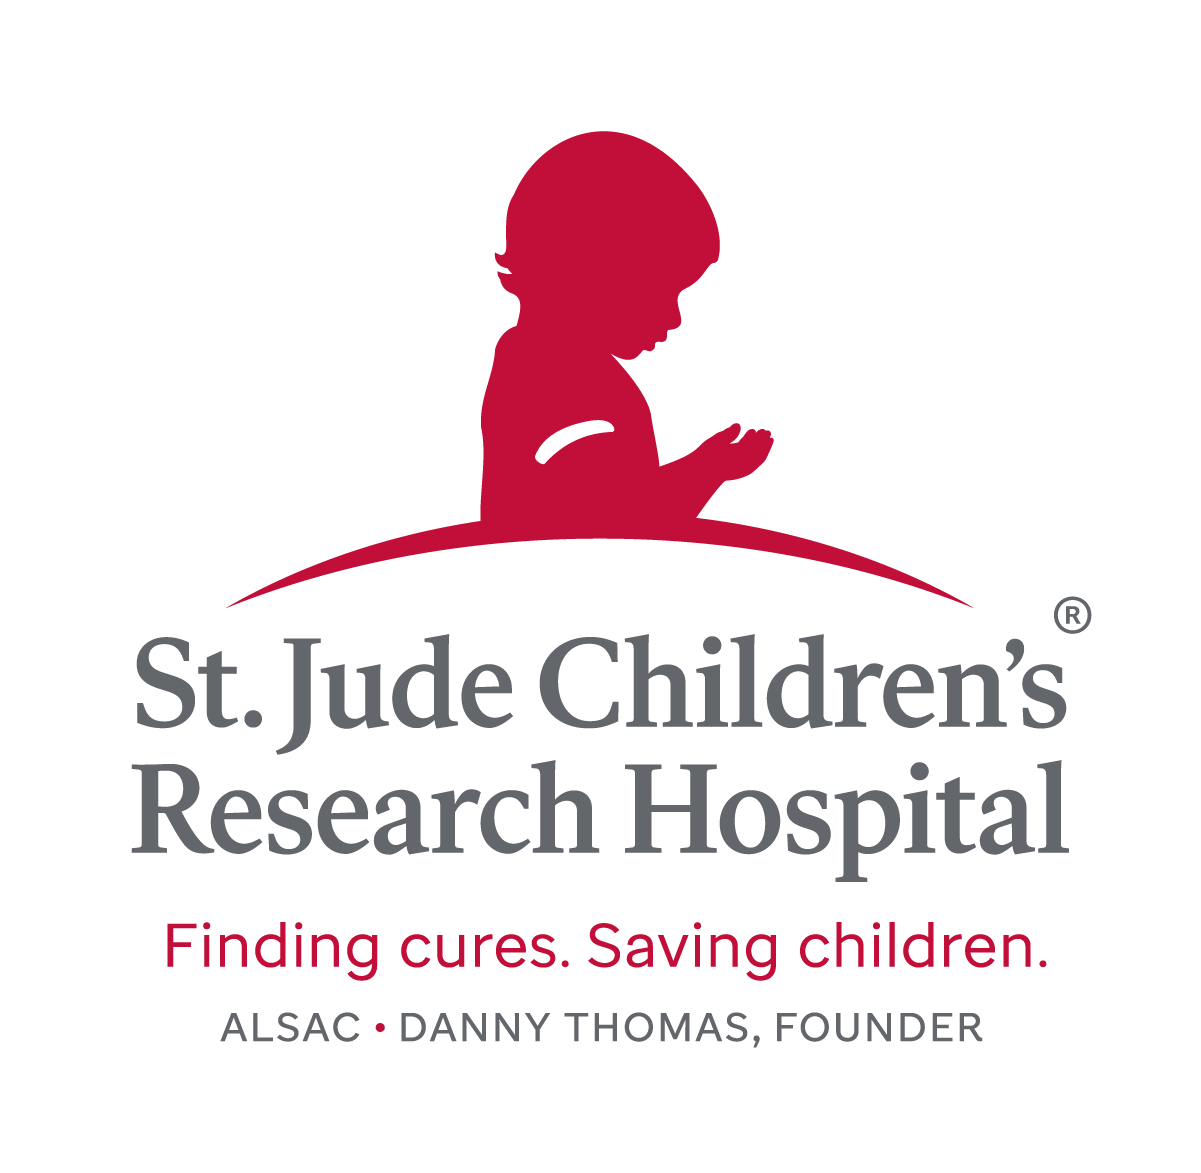 St. Jude Chidren's Research Hospital